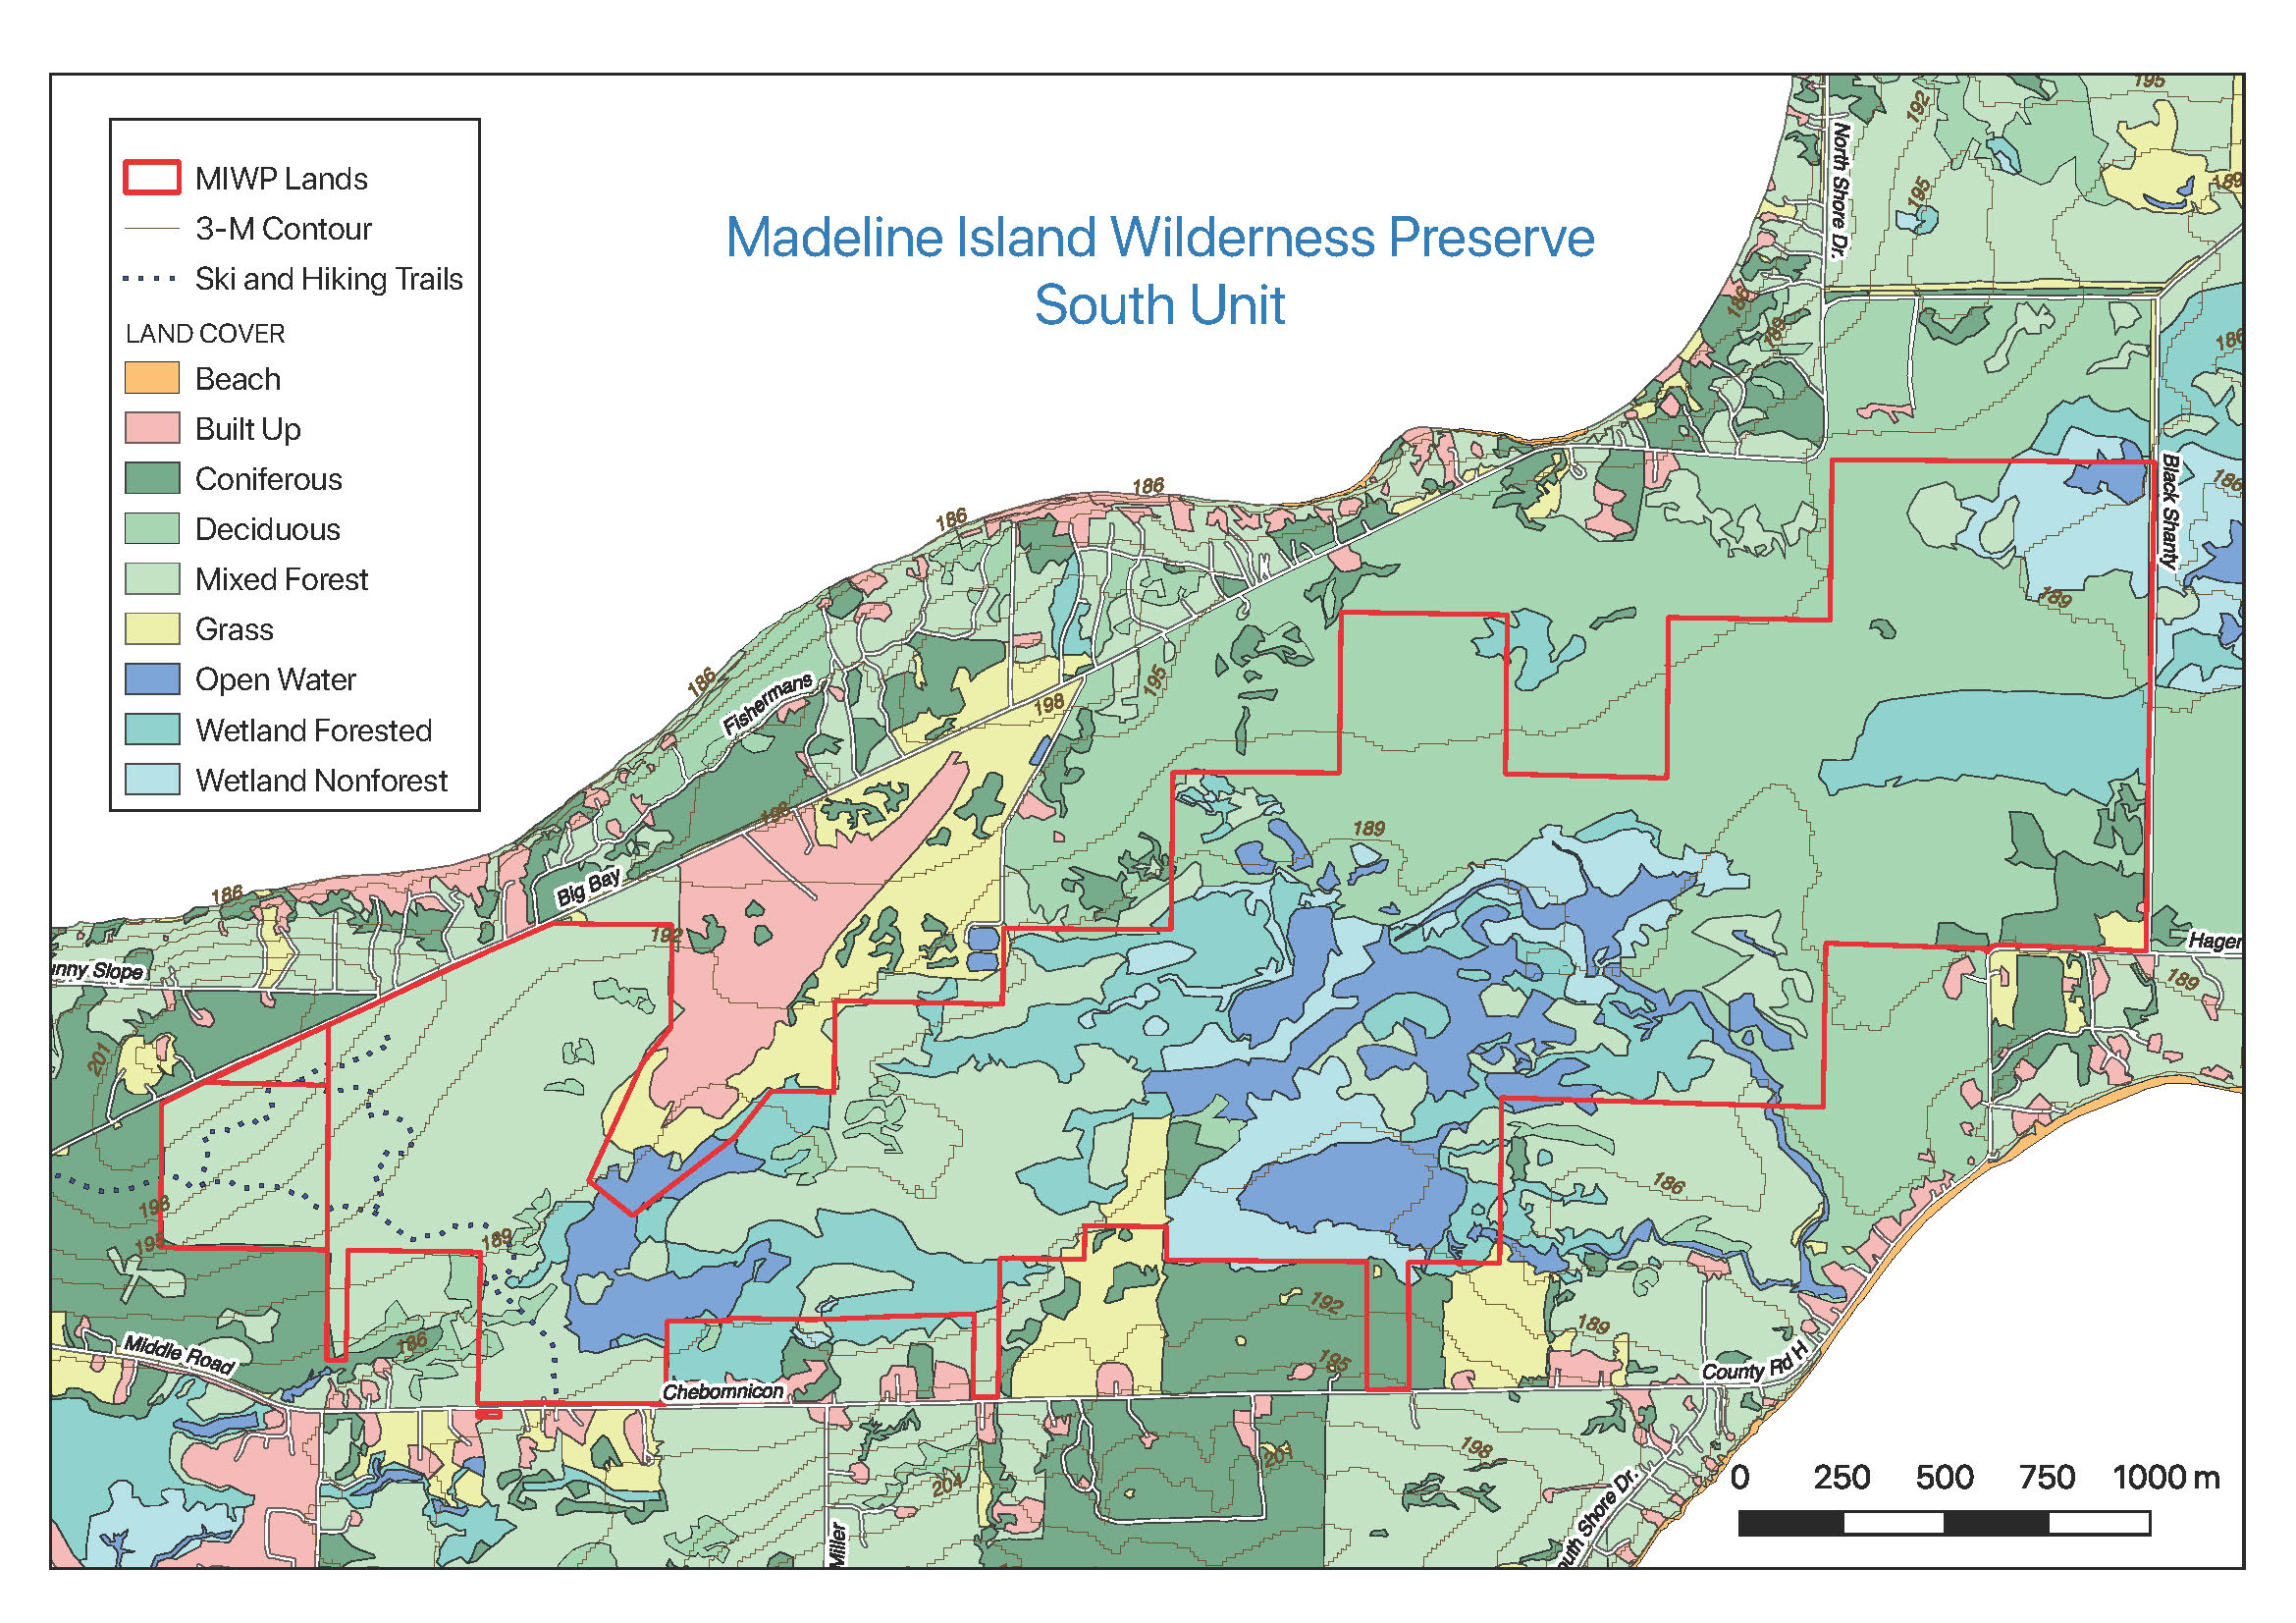 The Wilderness Preserve's South Unit is a 1150 acre mosaic of upland forest, wetland meadow, and open water. It was recently enlarged through a major charitable donation.